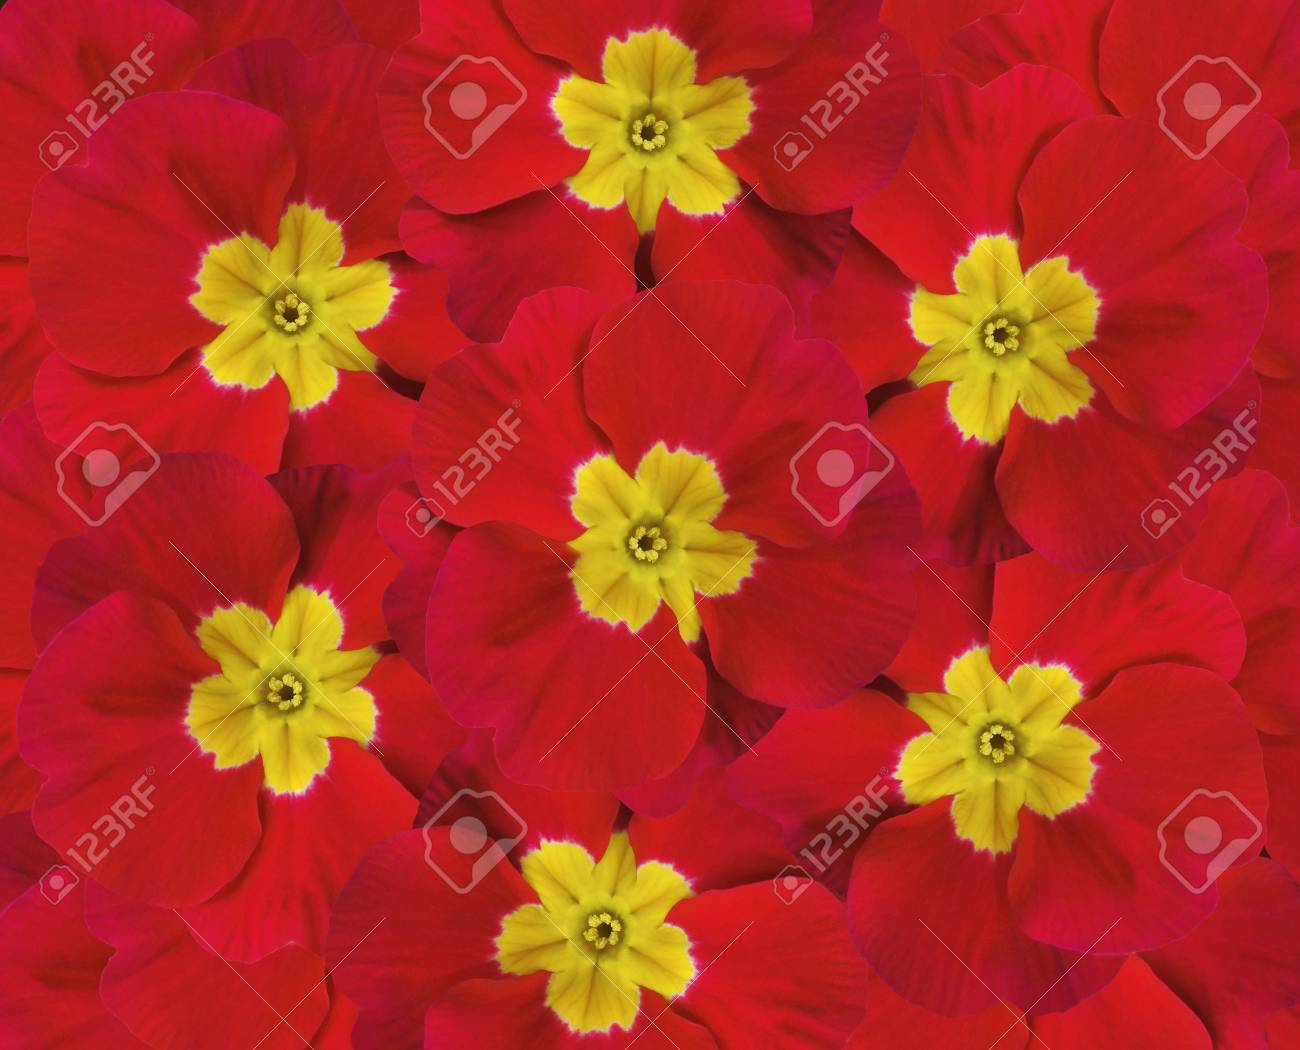 Flowers red violets five violets with a yellow center floral flowers red violets five violets with a yellow center floral collage flower composition mightylinksfo